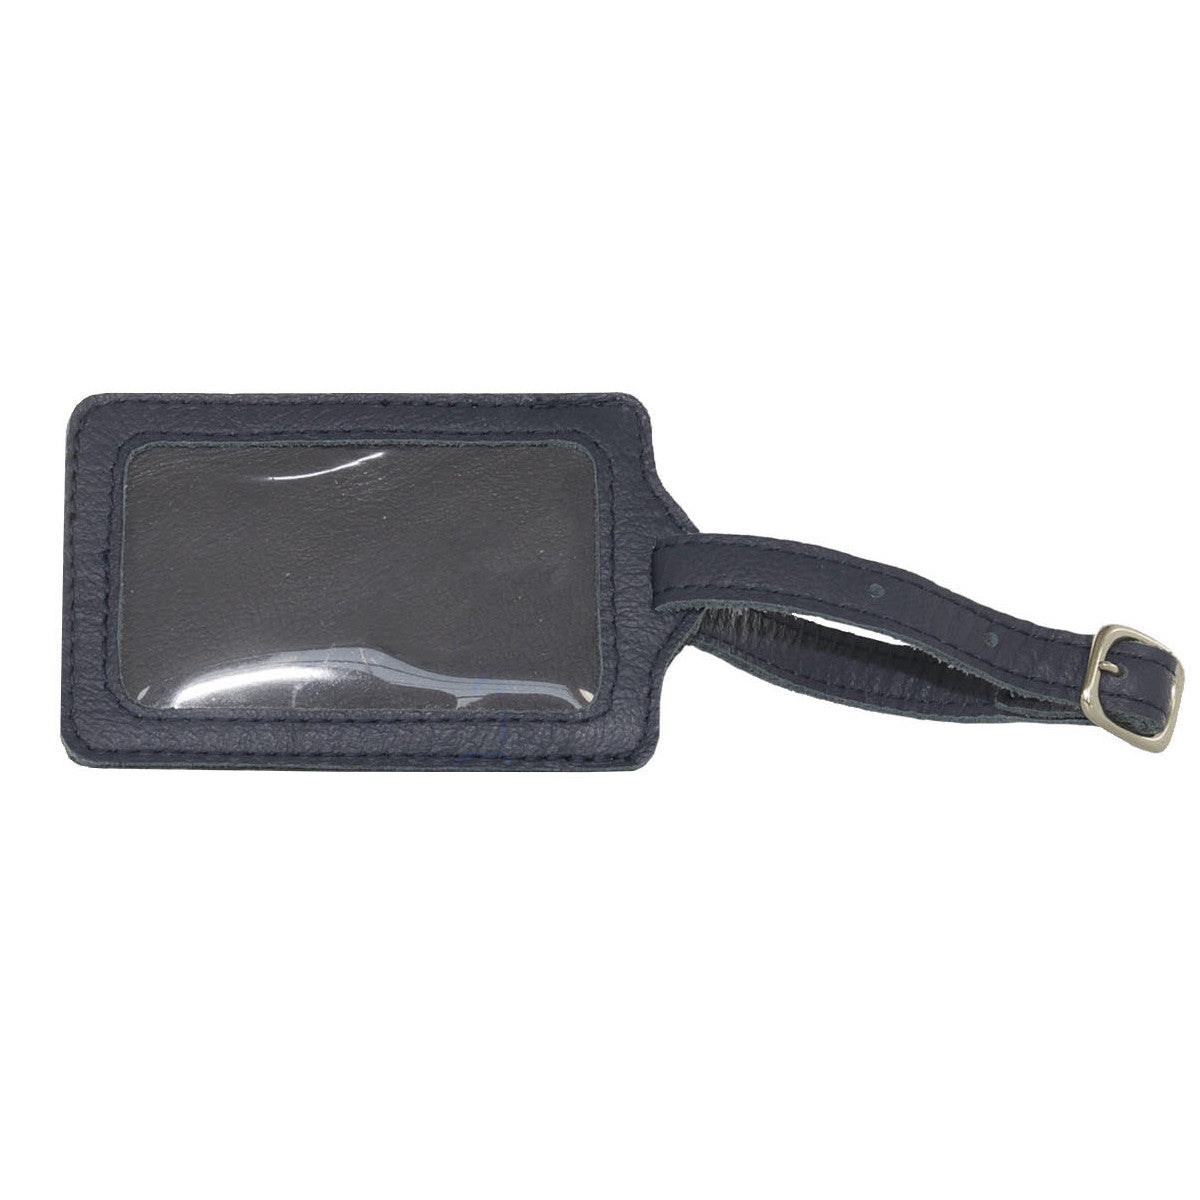 Alaska Airlines Luggage Tag Accessories - Looptworks